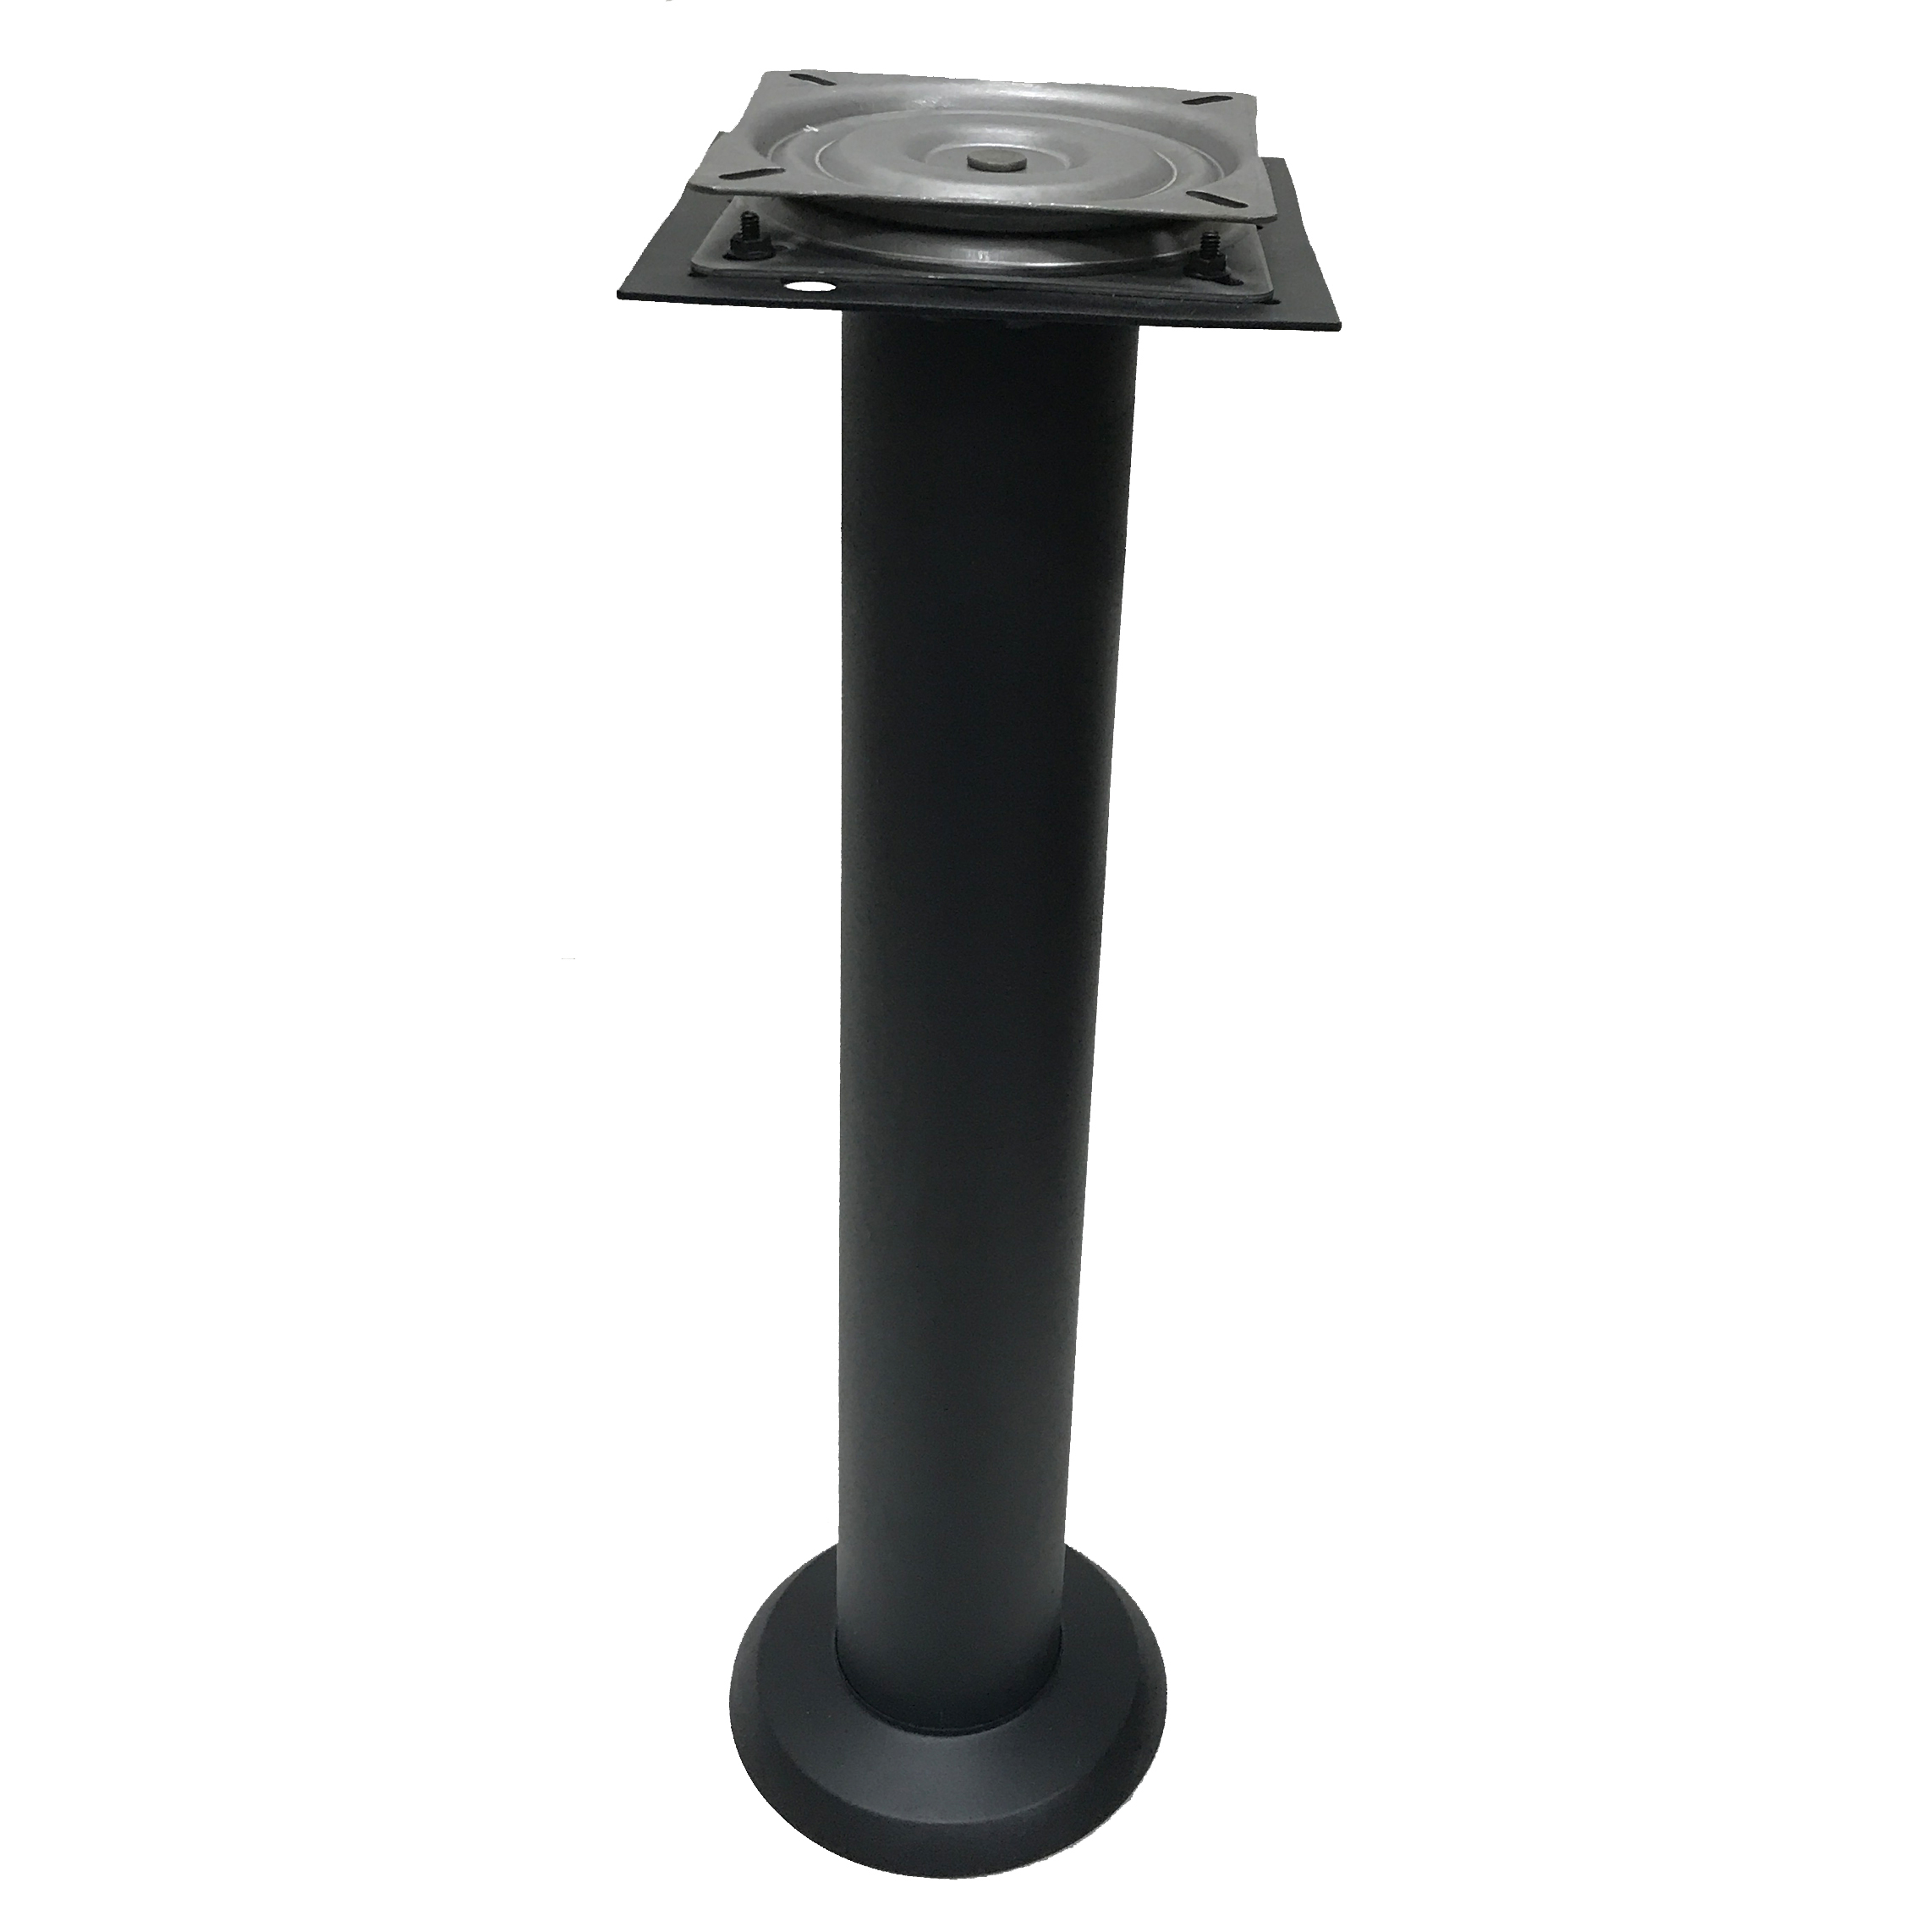 Oak Street BDP BAR HEIGHT bar stool base